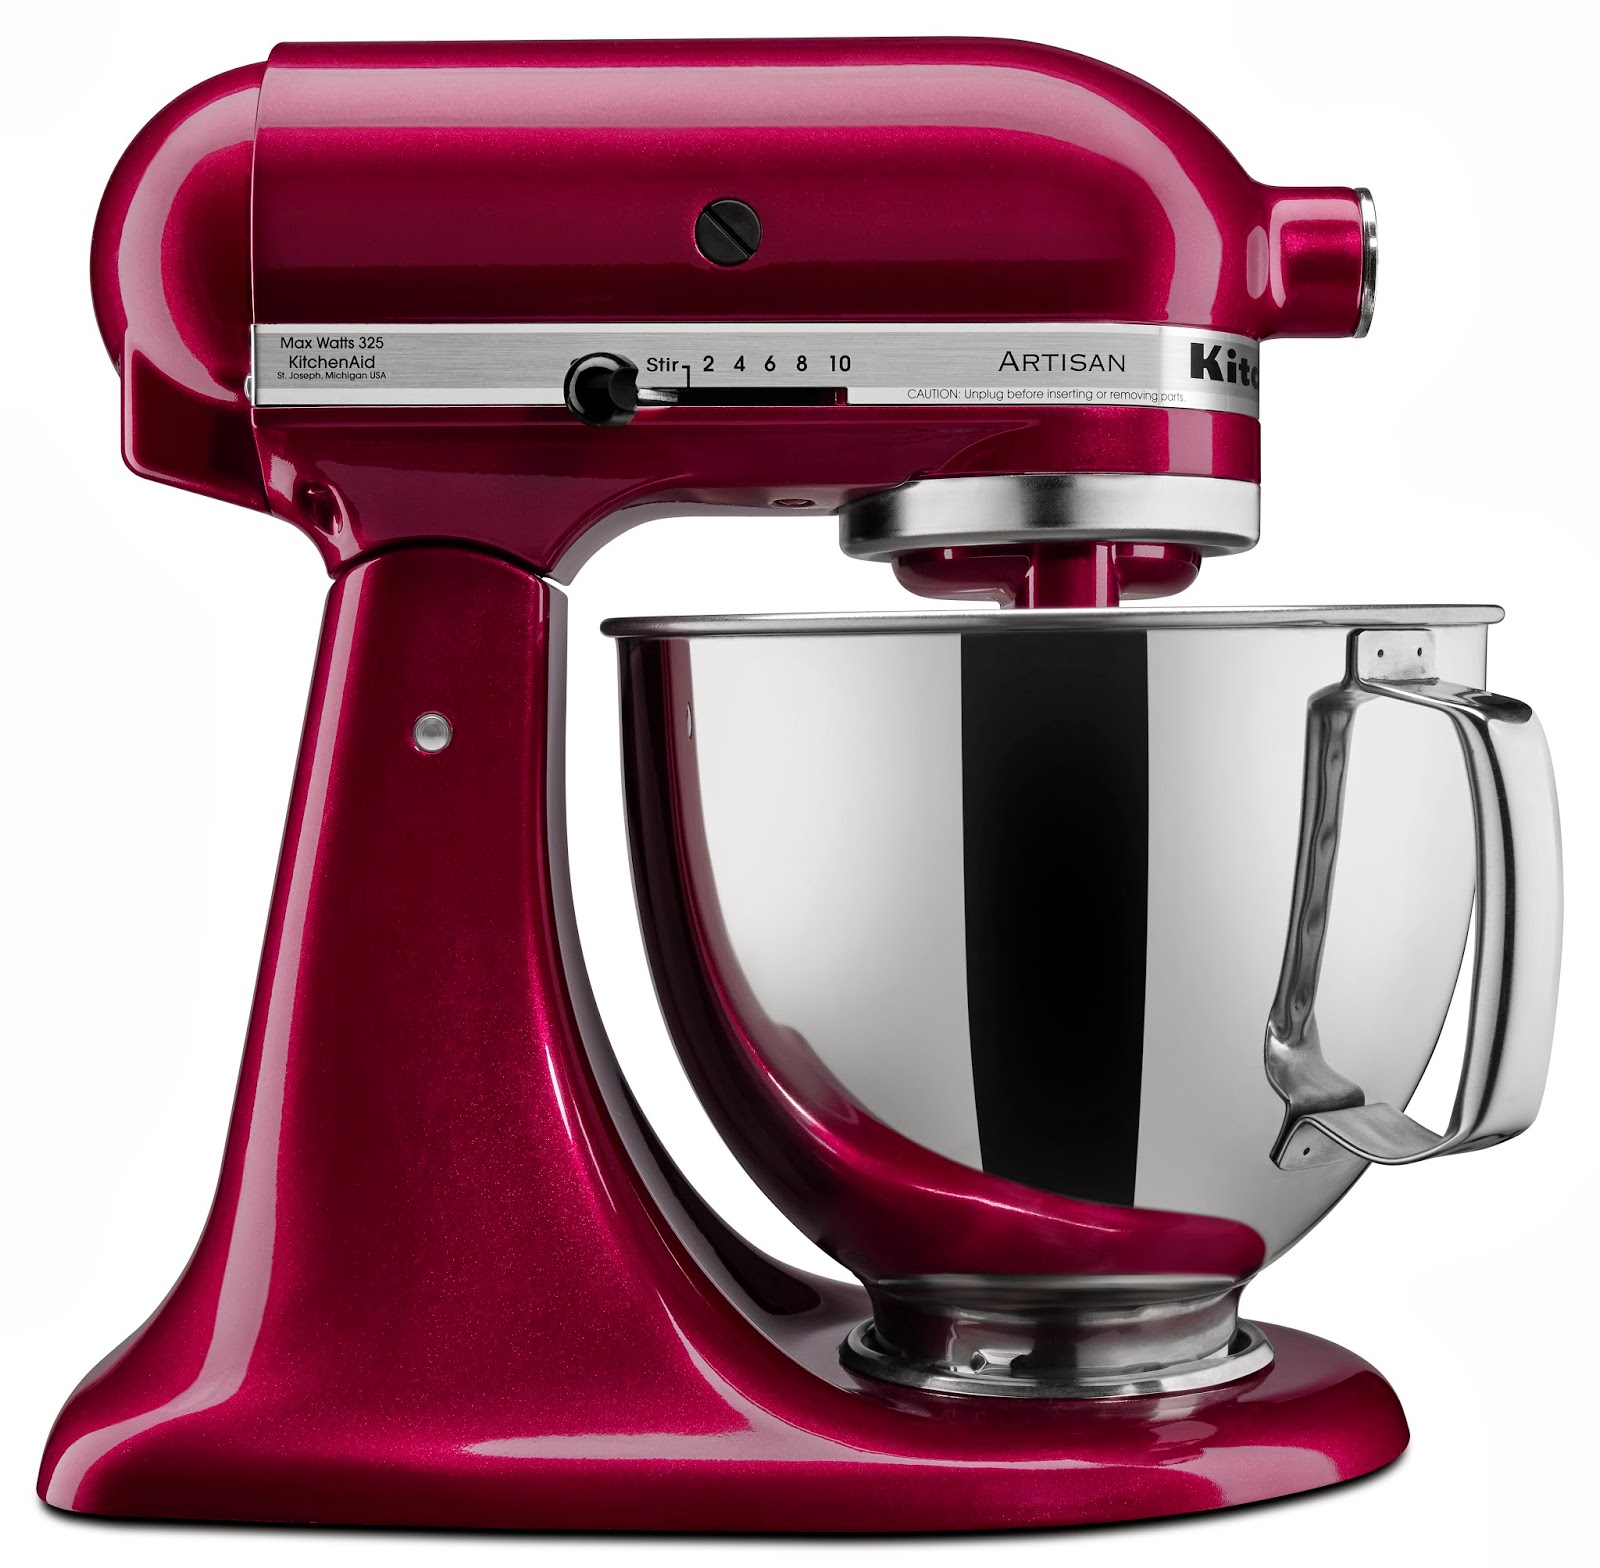 Target Small Kitchen Appliances Rupali Dean Traveller And Foodie International Home Housewares